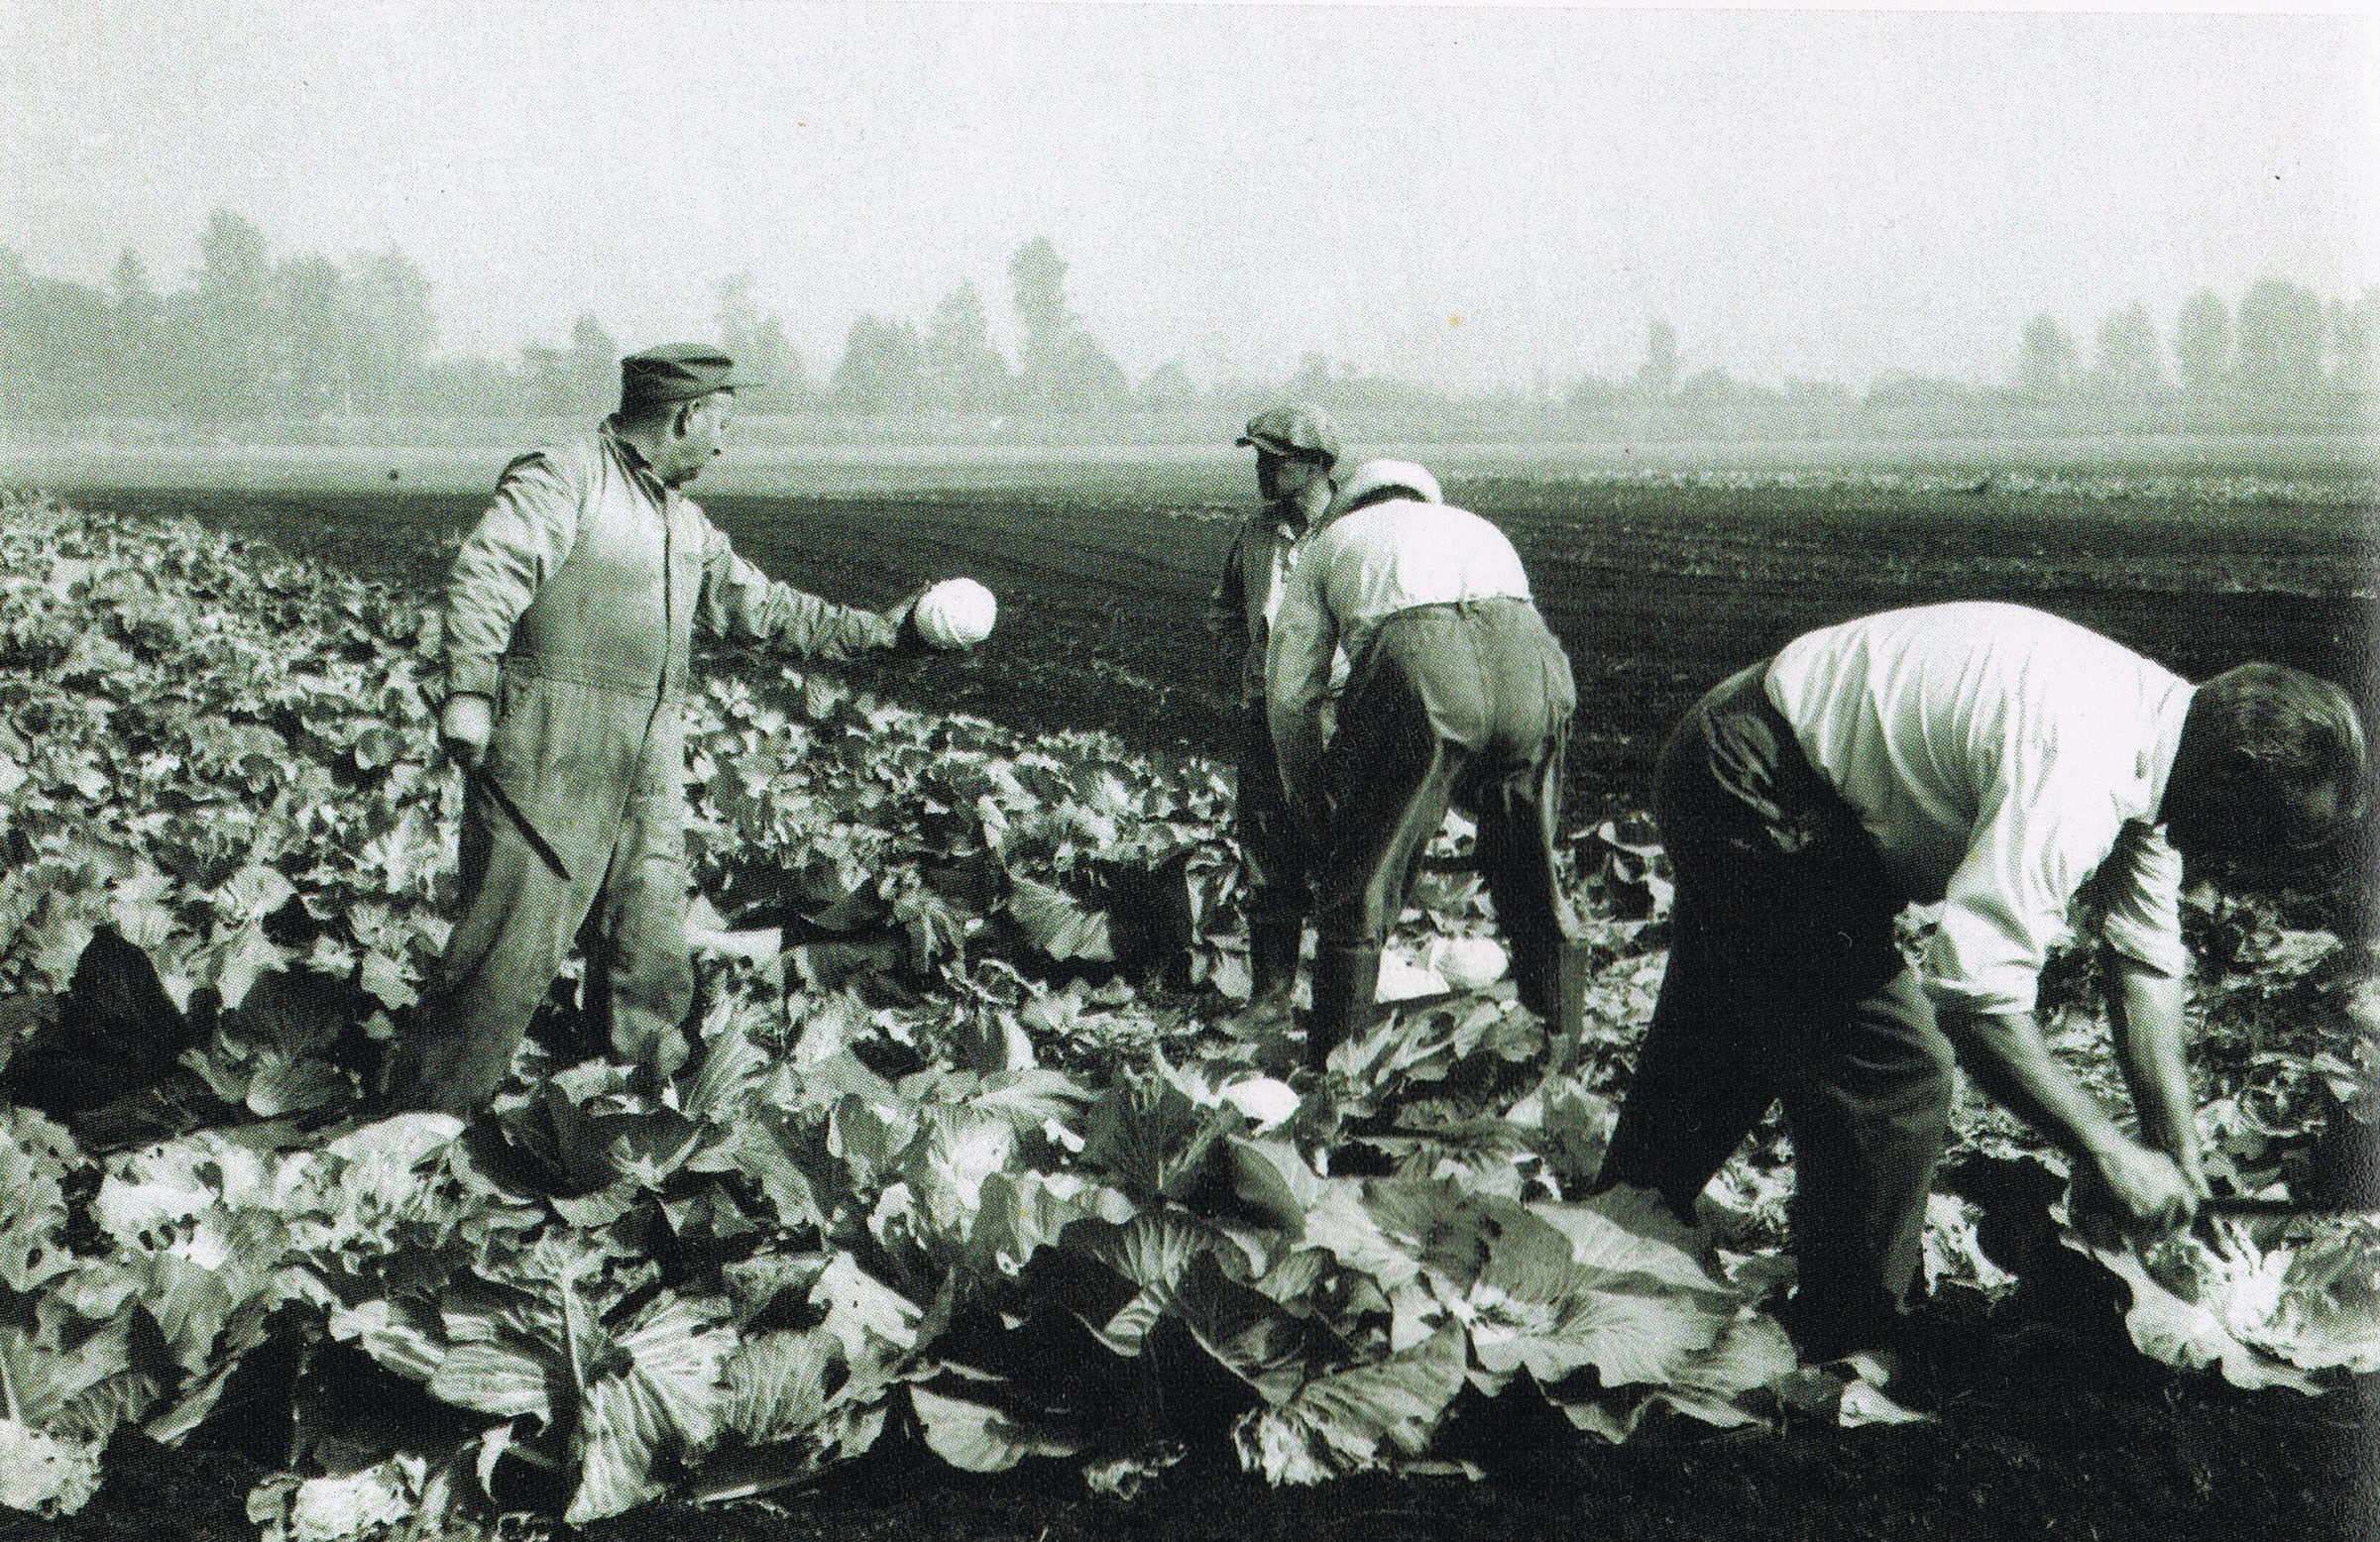 3 men in a field harvesting cabbages.